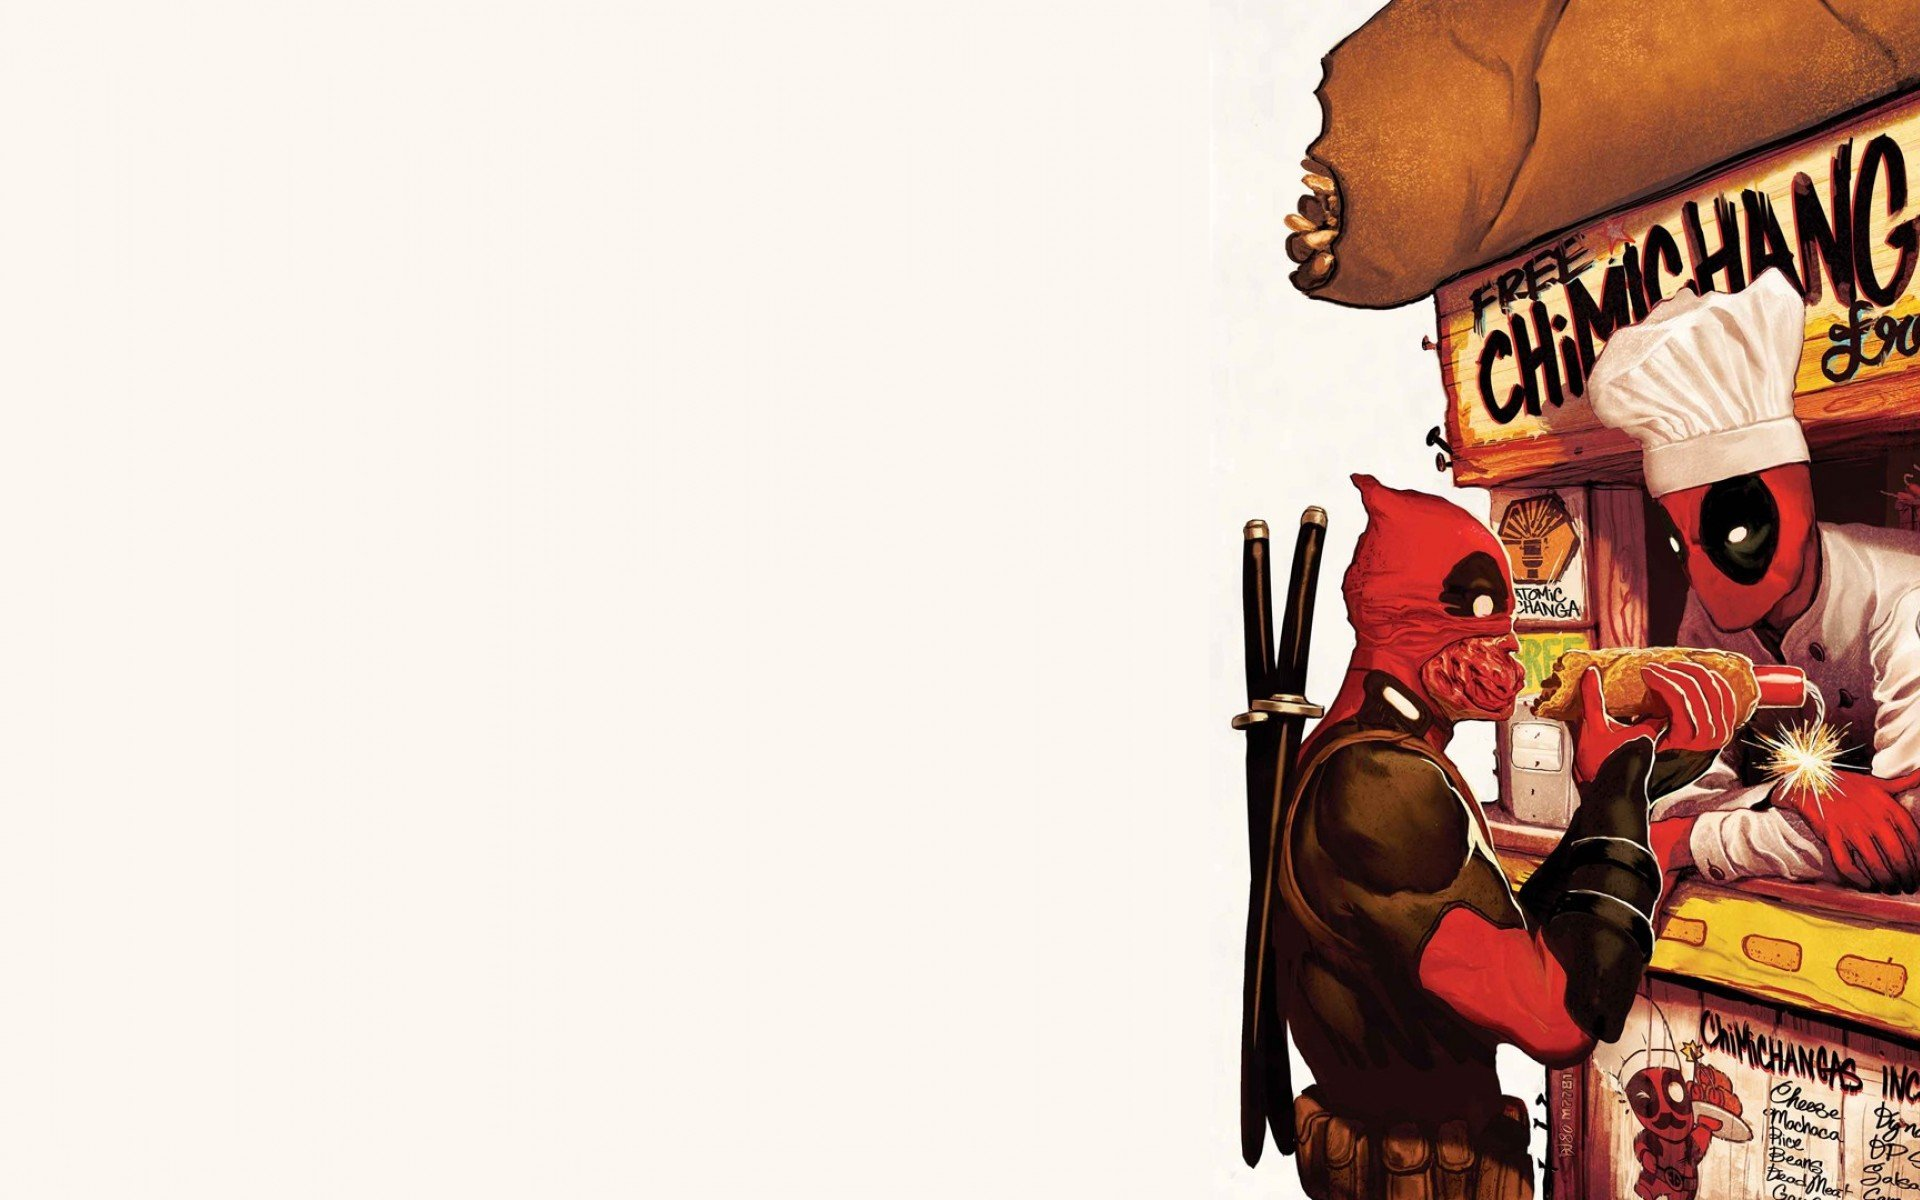 deadpool-wallpaper-hotdogs-wilson-comics-wallpapers